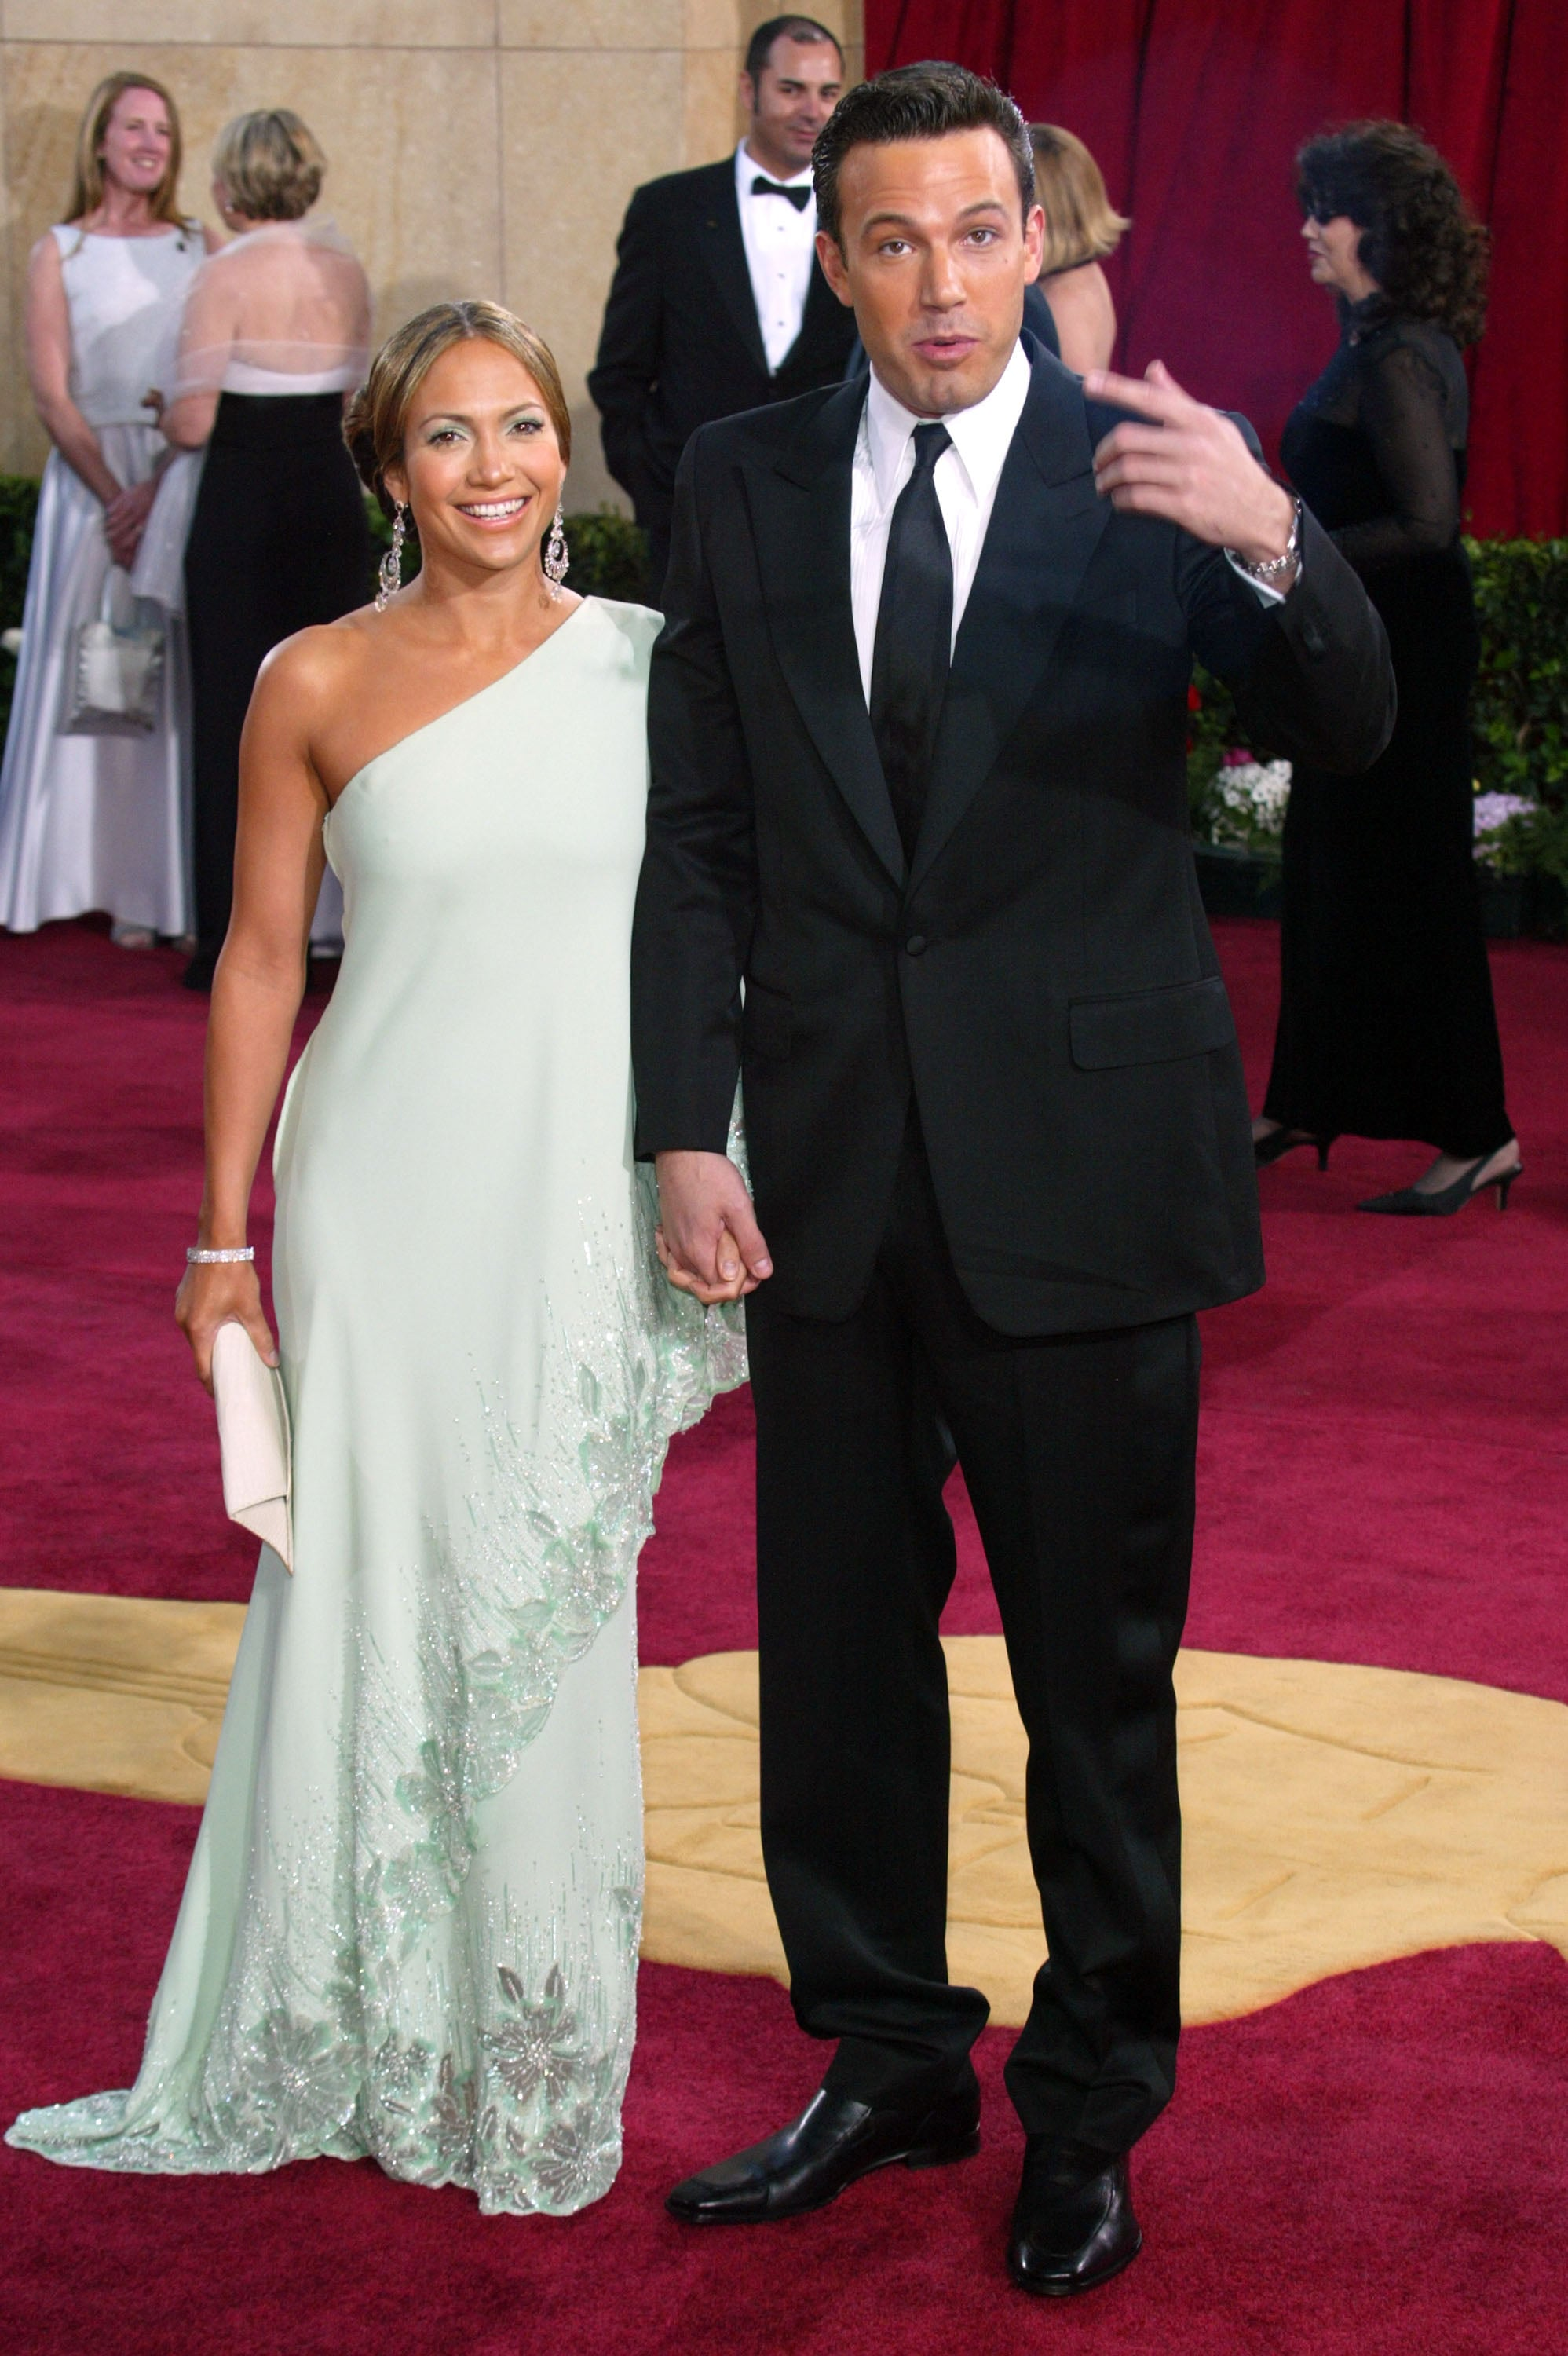 Ben Affleck and Jennifer Lopez walked the red carpet hand in hand at the 2003 show, but the couple called it quits a year later.